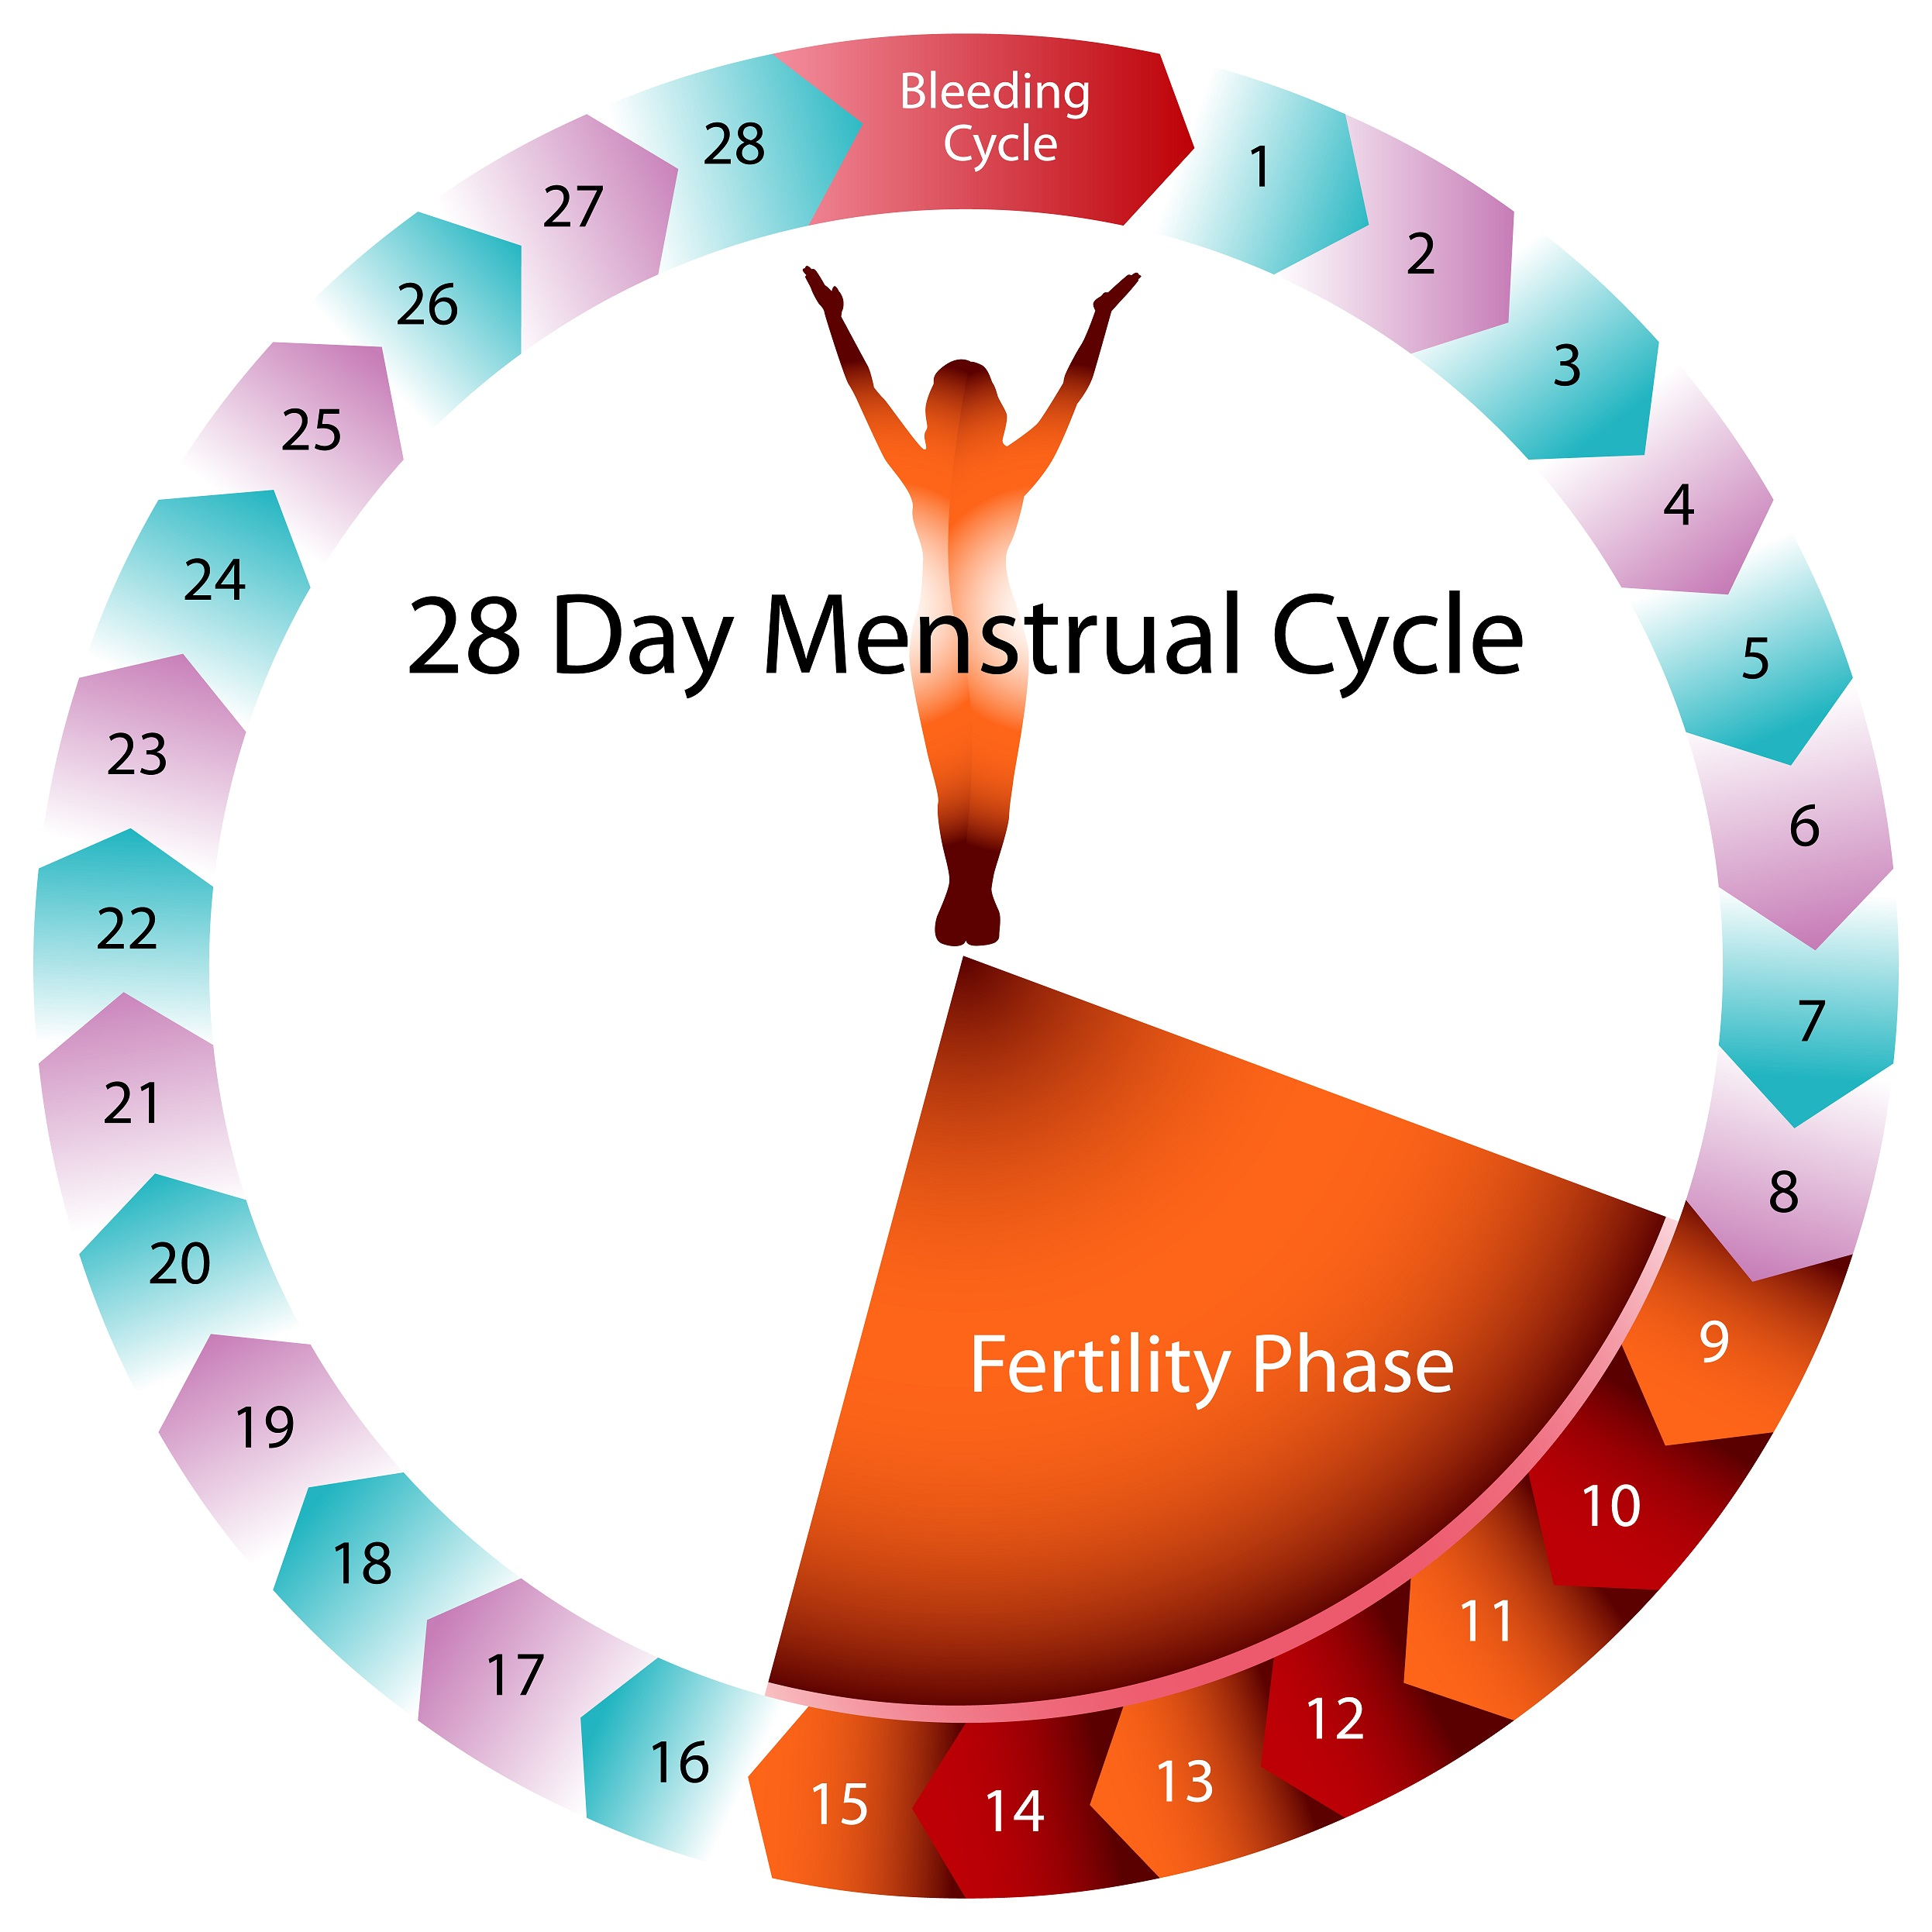 Ovulation medical basics explained